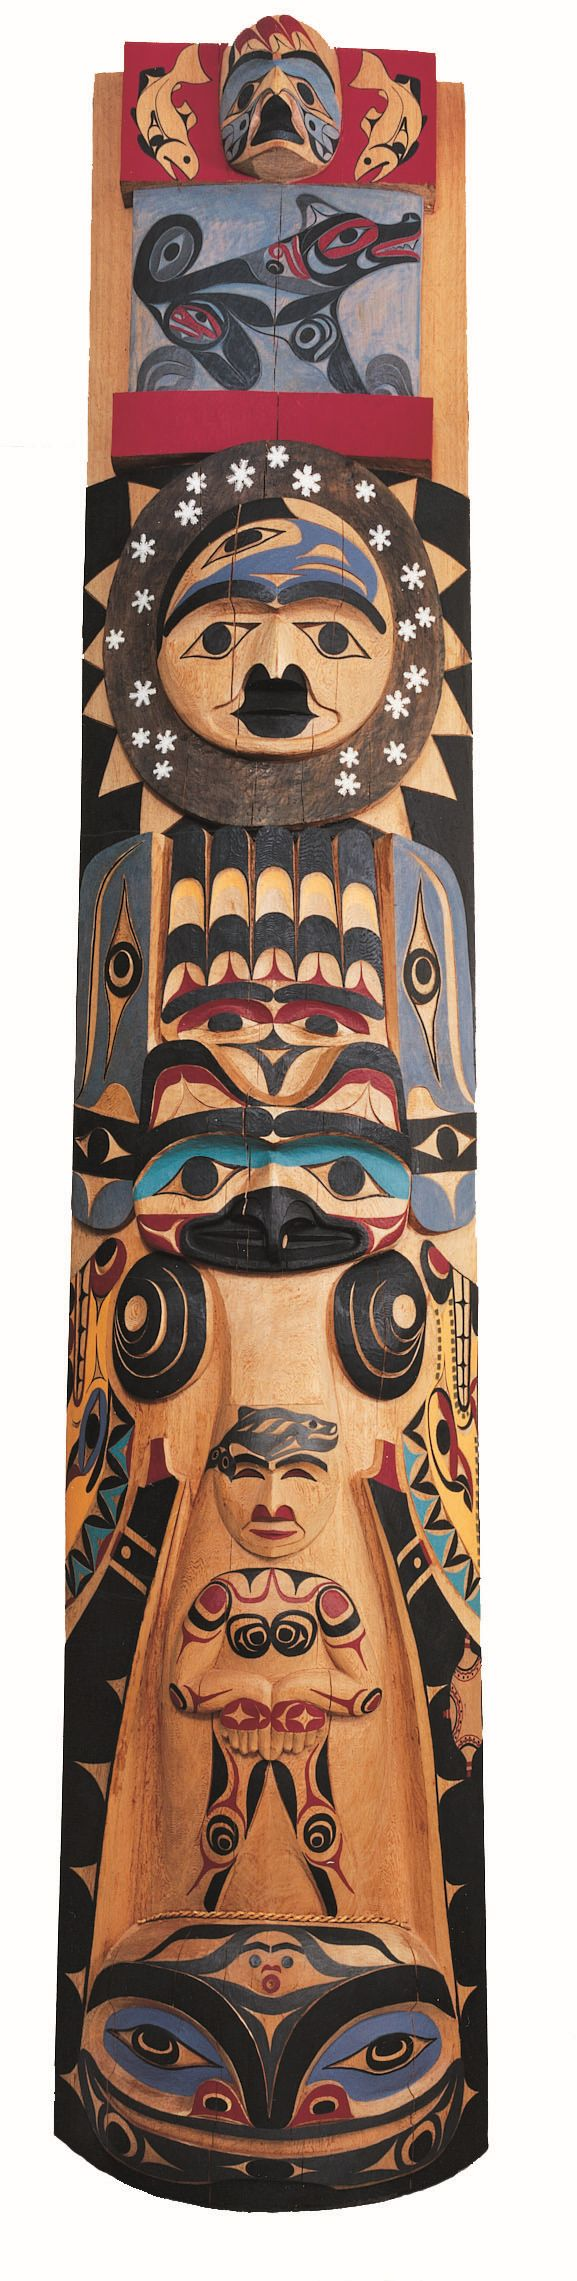 Totem pole, World Cultures gallery